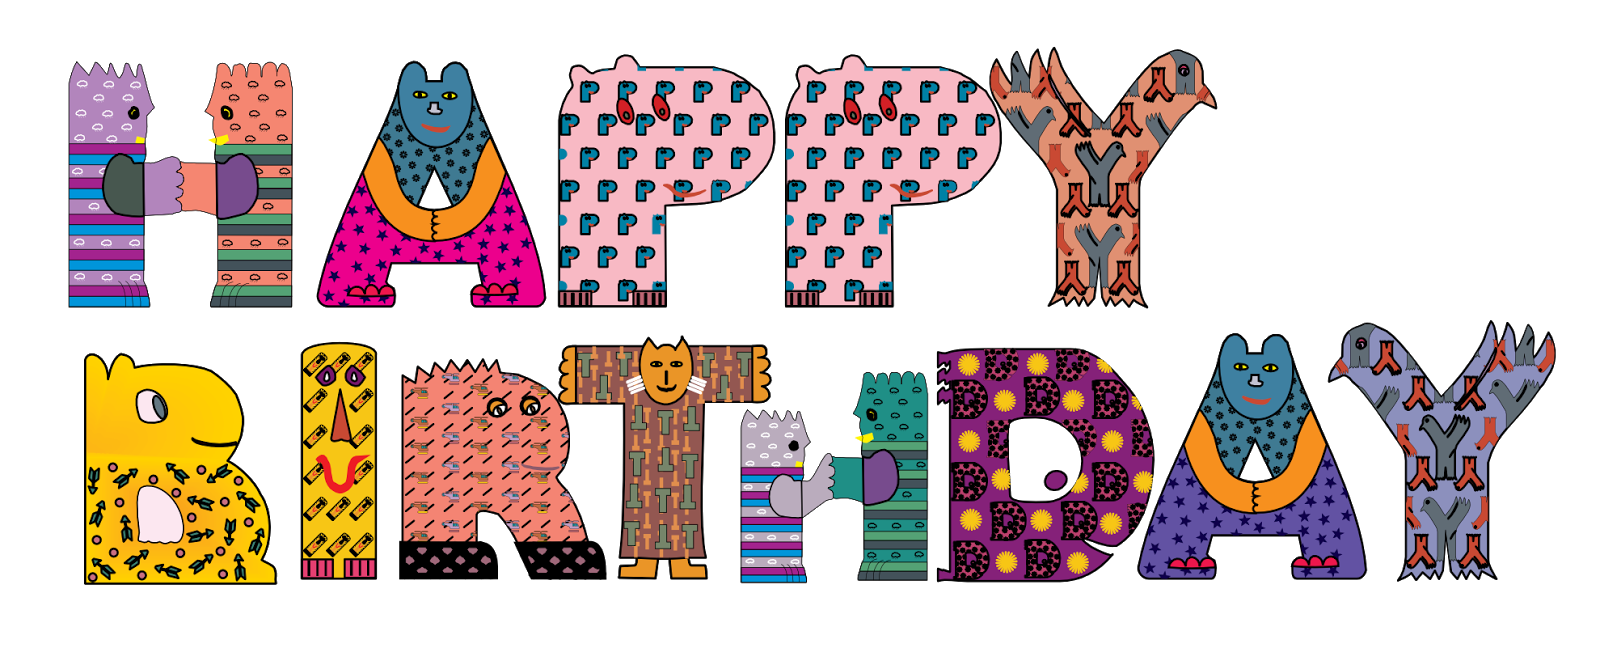 ImagesList.com: Happy Birthday with Letters, part 1